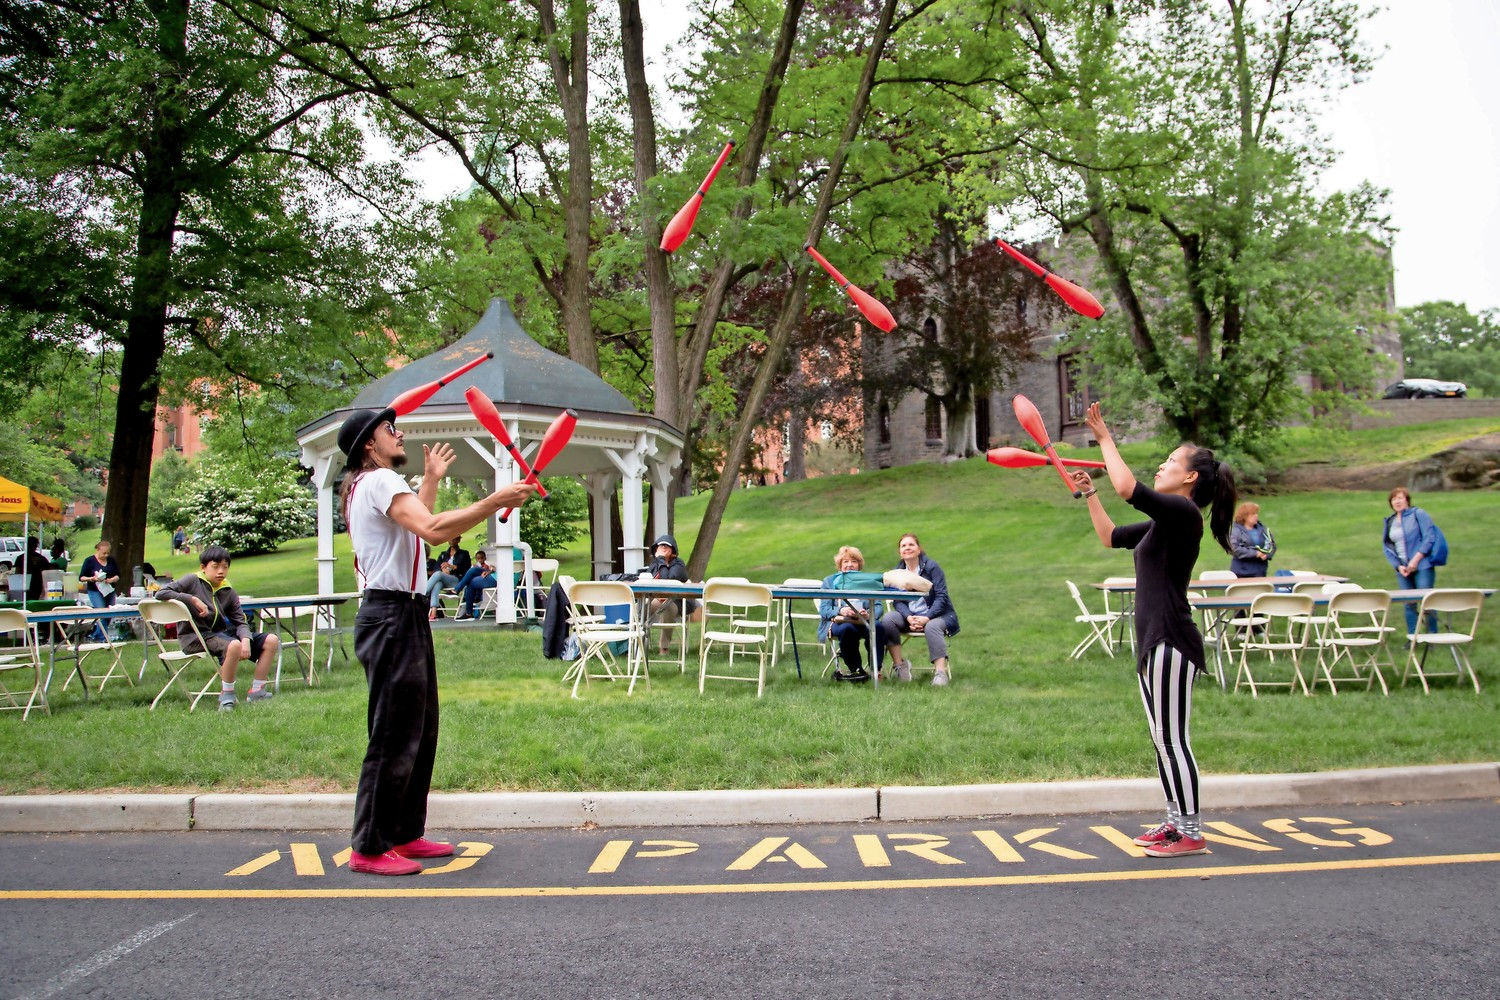 Jugglers throw pins back and forth to one another without dropping any at RiverFestBX.